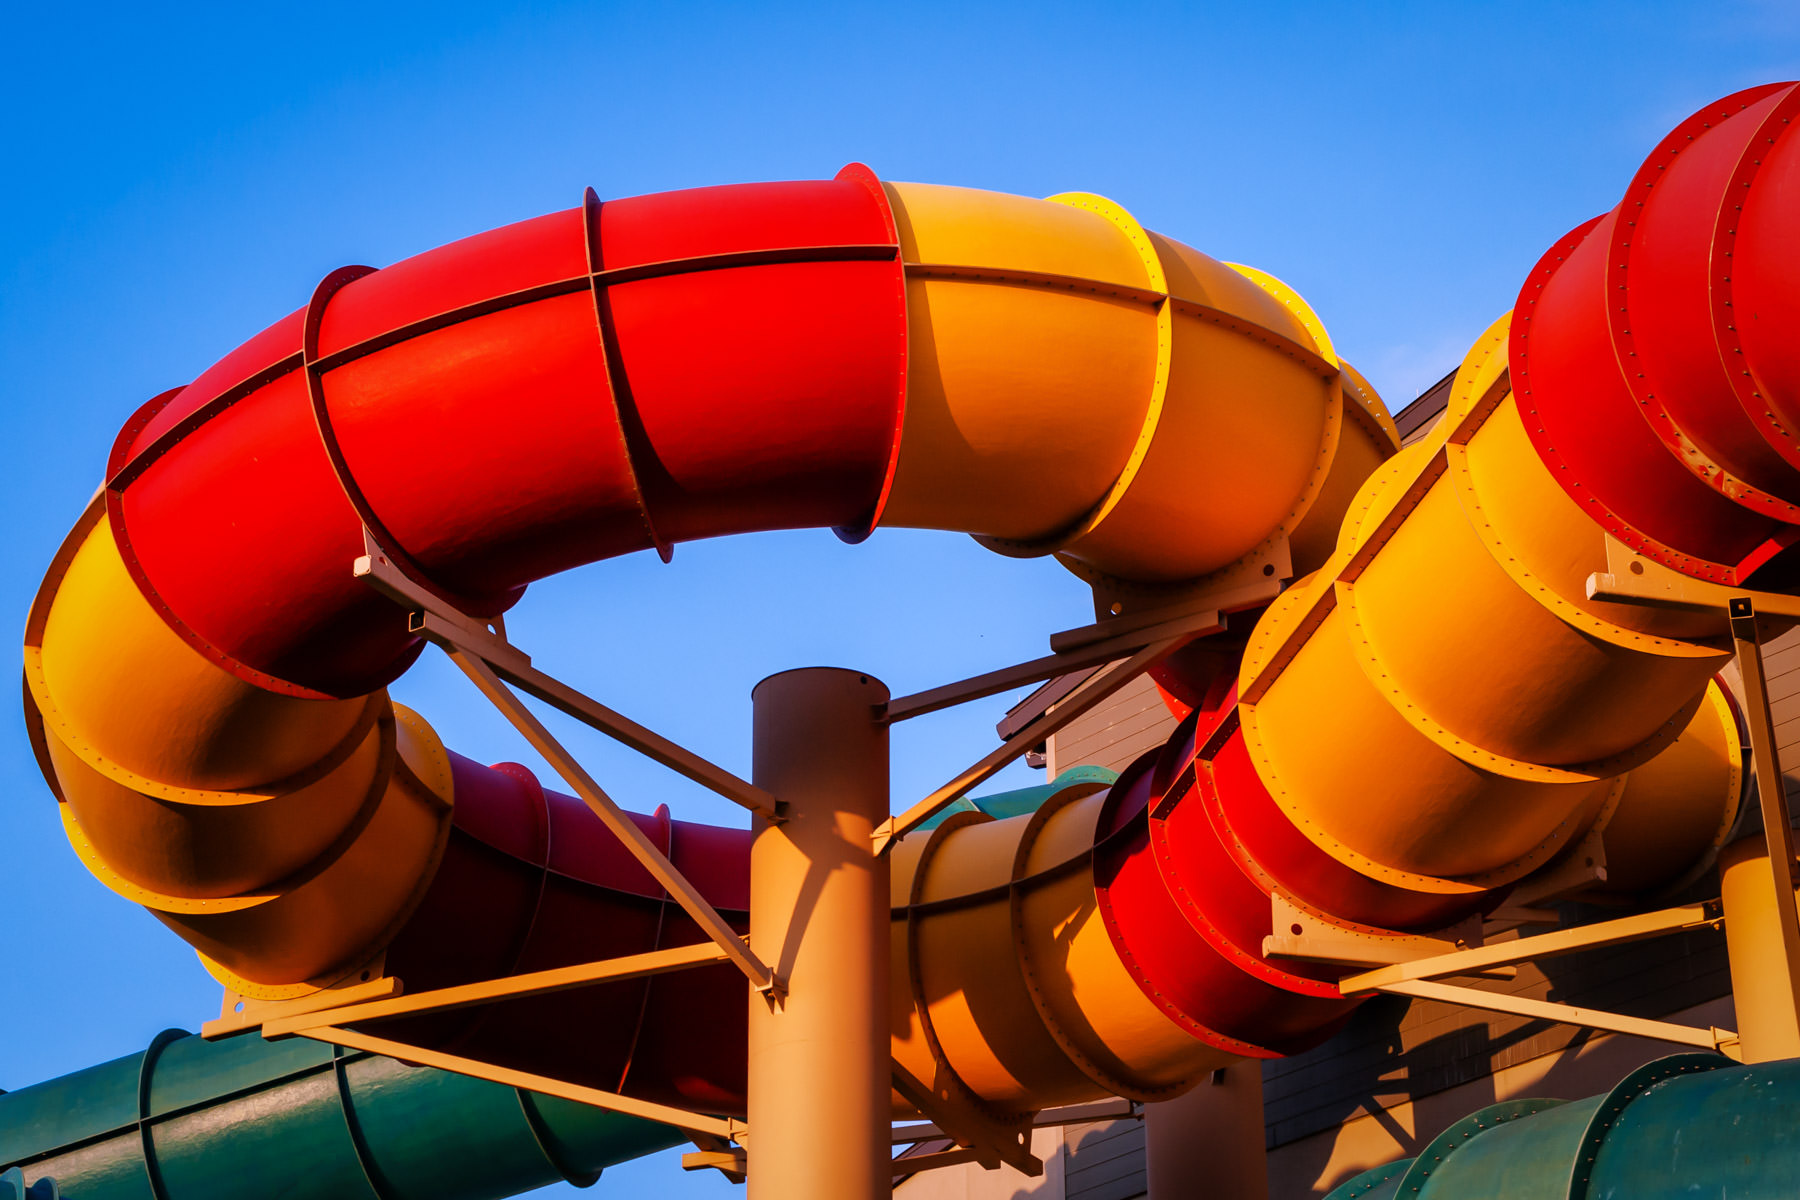 A water slide at Grapevine, Texas' Great Wolf Lodge.